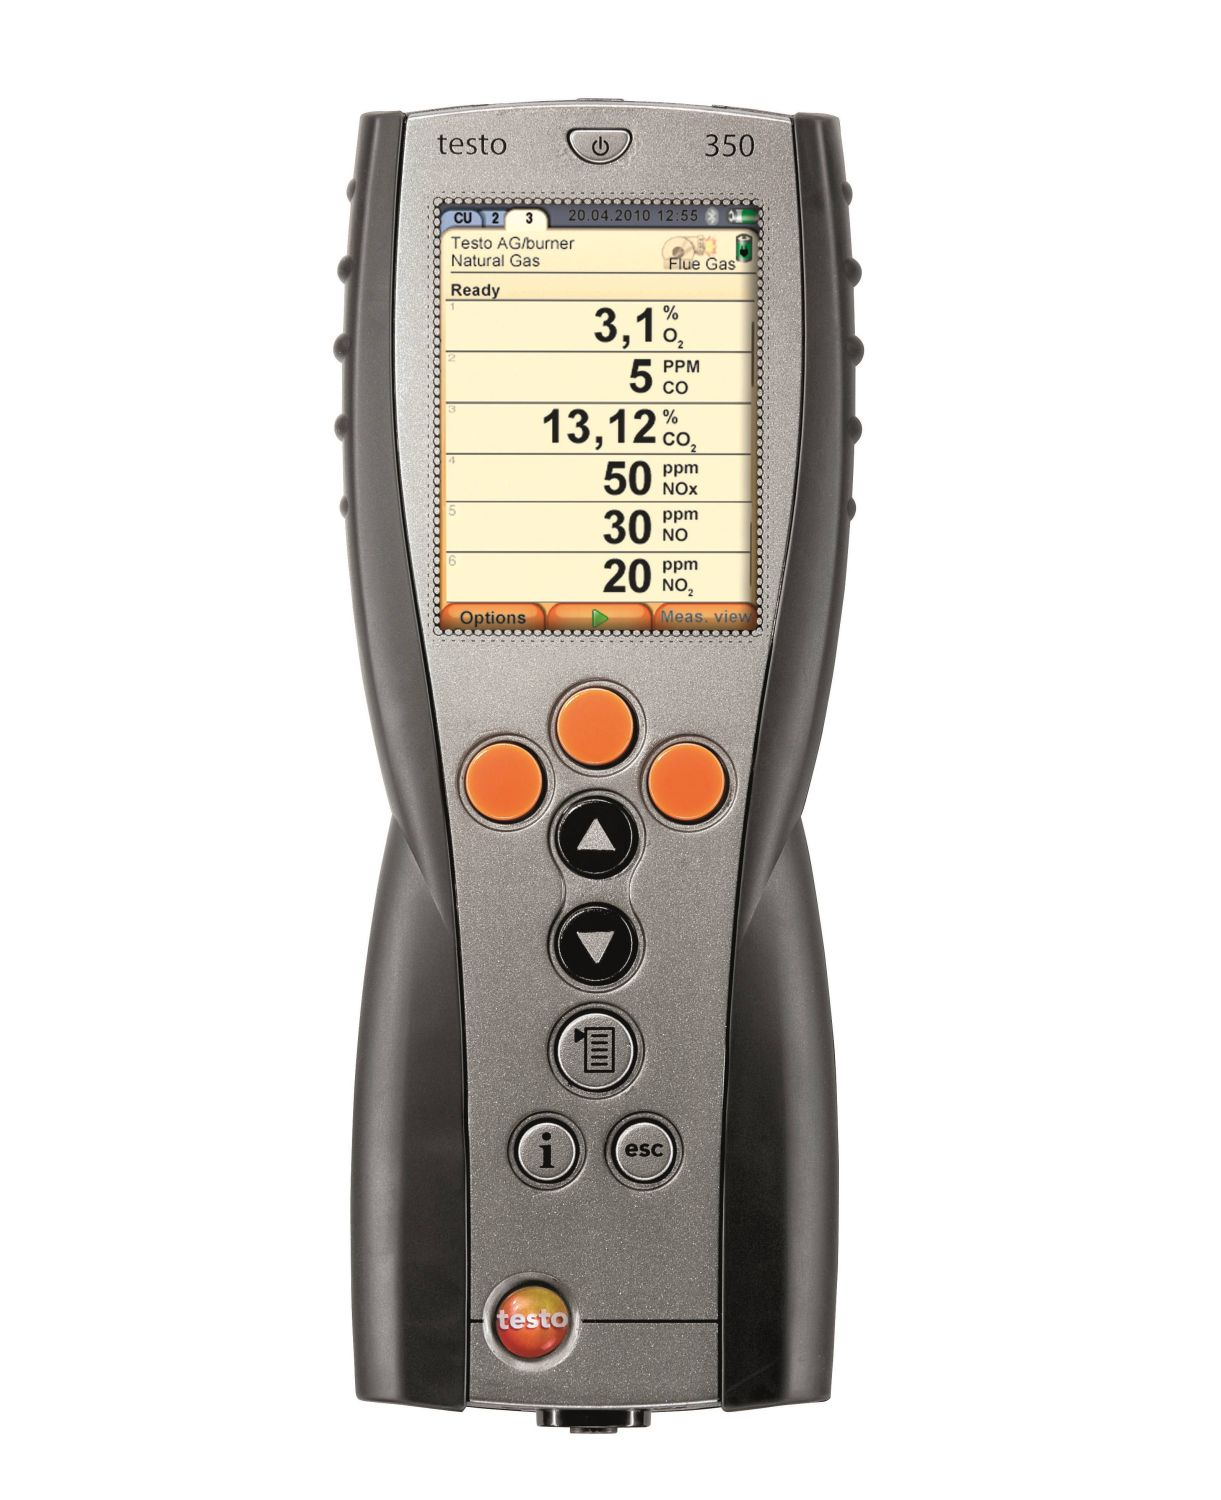 Testo 350 - Control Unit for exhaust gas analyzer